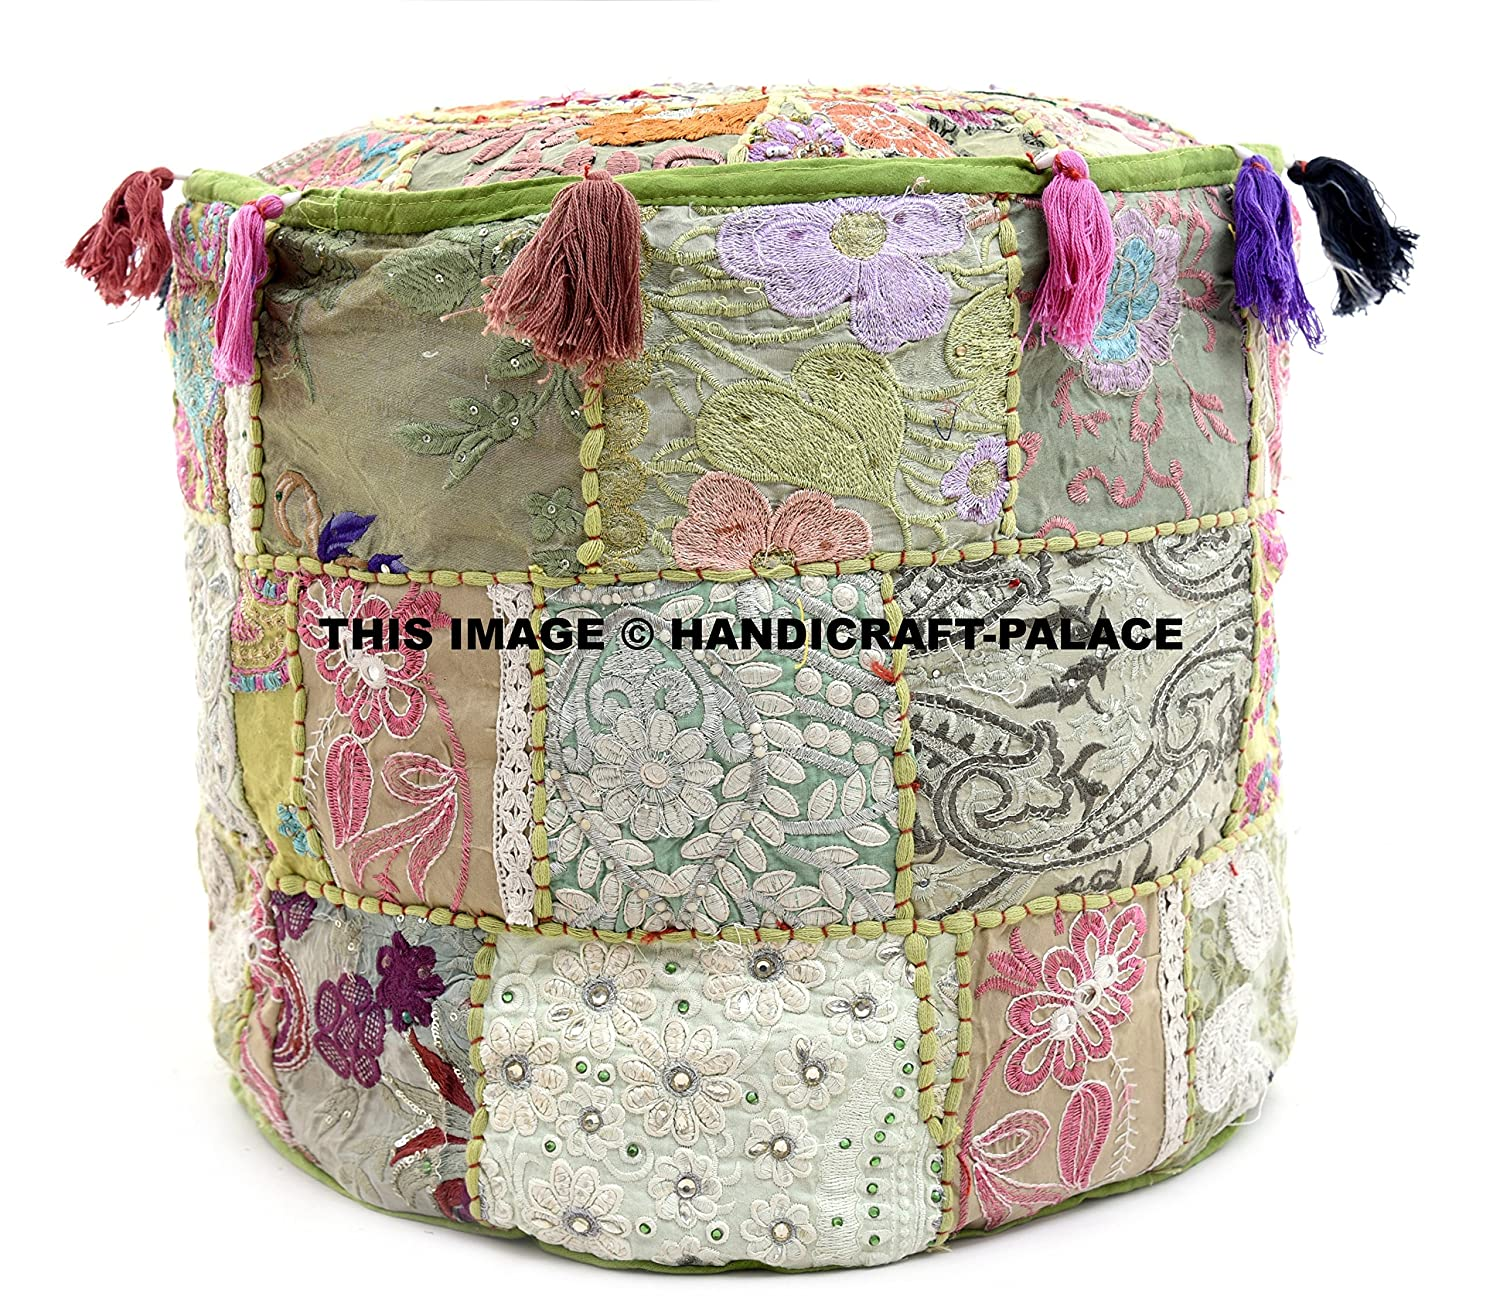 Handicraft-Palace Indian Traditional Cotton Round Ottoman Cushion Pouffe Cover/ Bohemian Handmade Patchwork Floor Footstool for Sofa Couch/Vintage Ethnic Kantha Designer Embroidery Tassel Hassock POSS-2